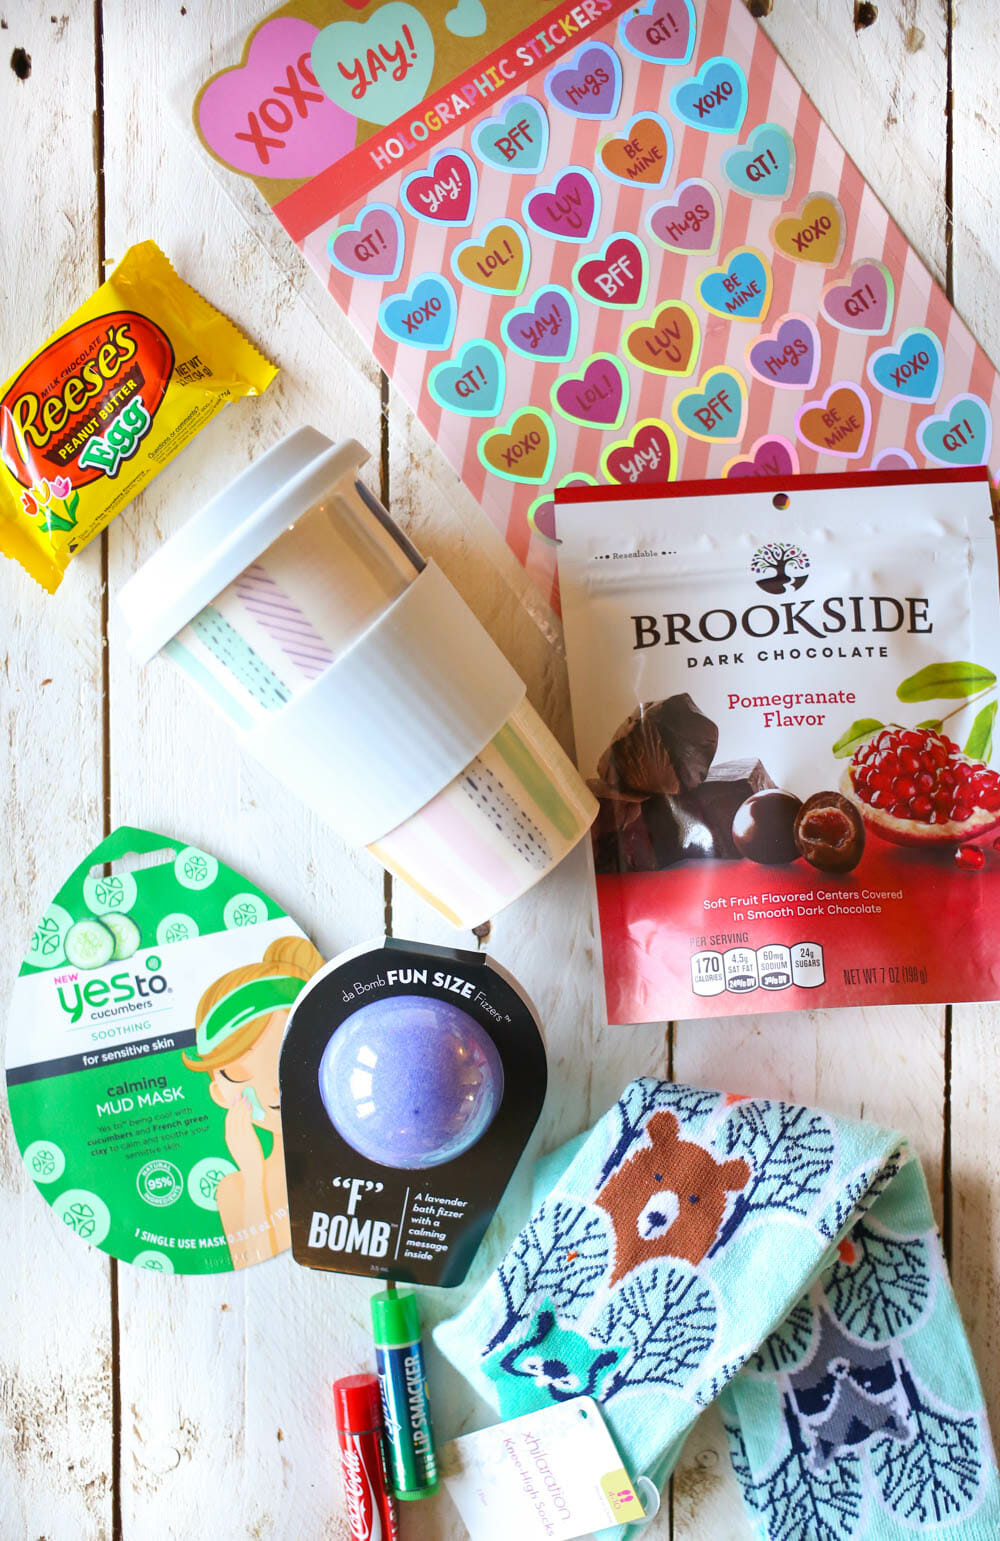 Galentine's day swag bags